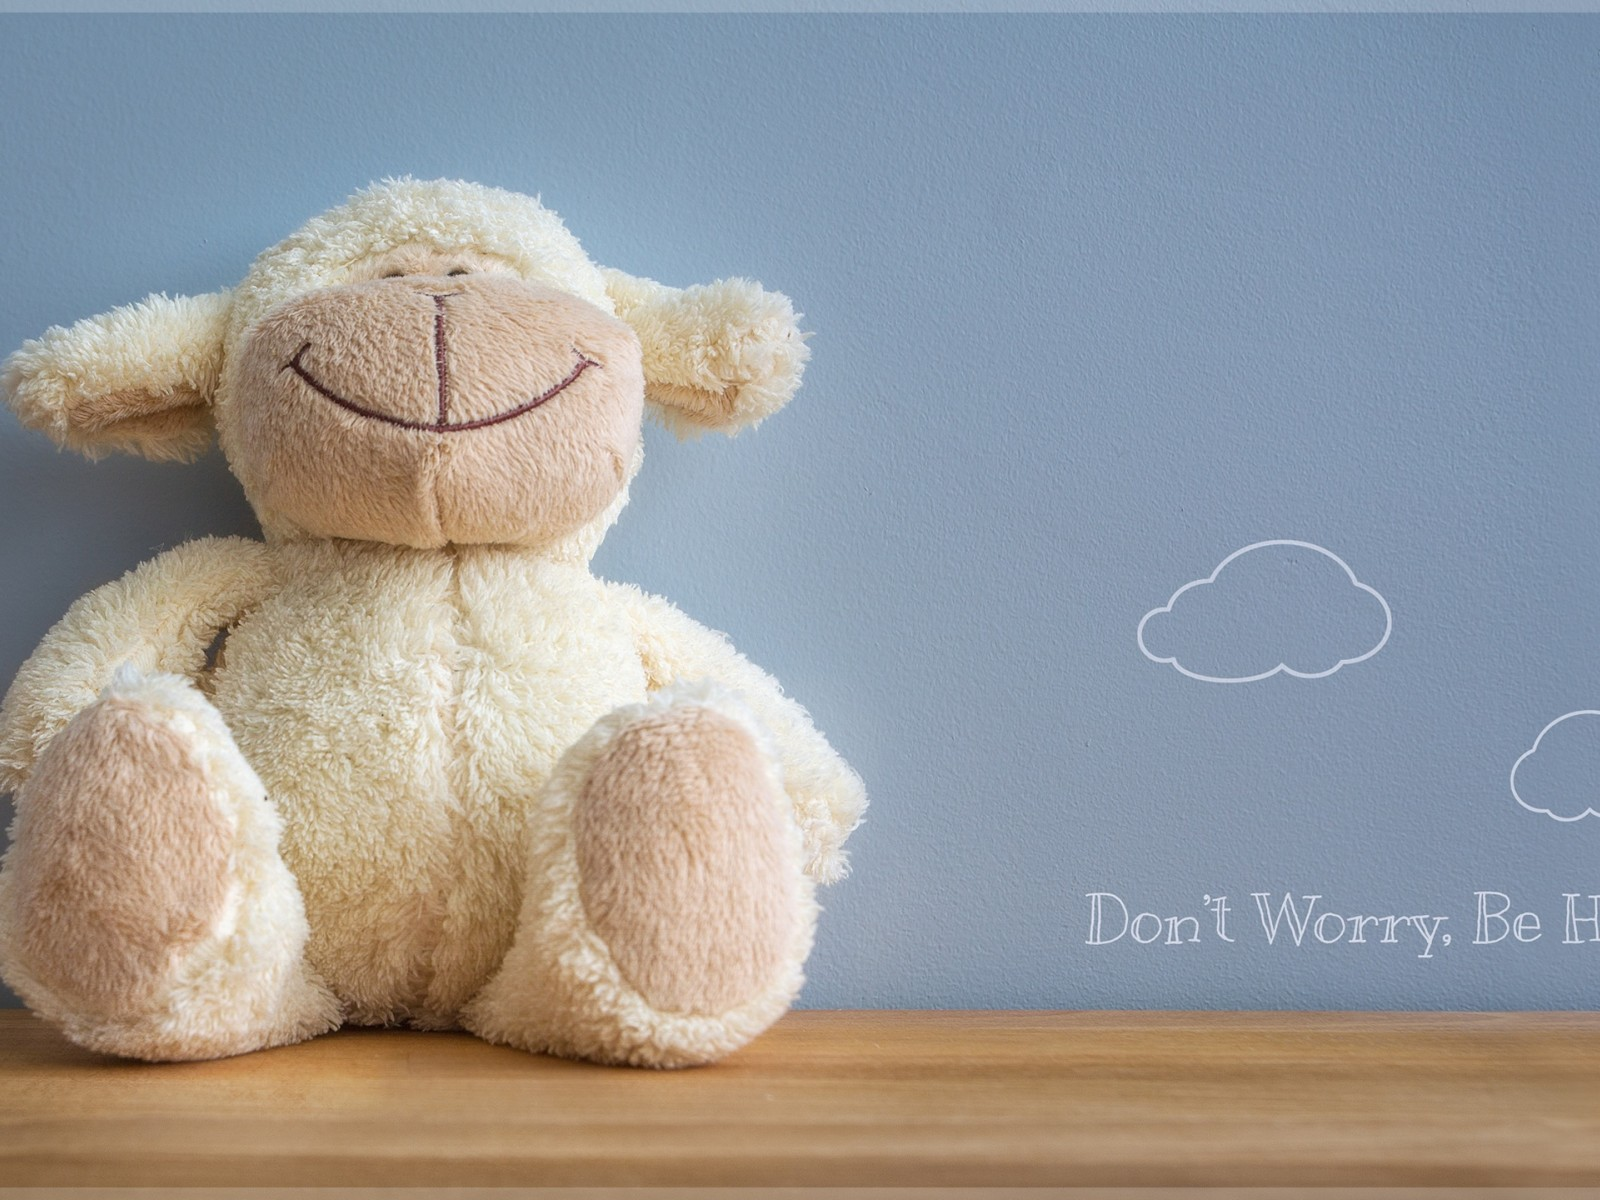 Download Don't Worry Be Happy Hd Wallpaper for Desktop and Mobiles